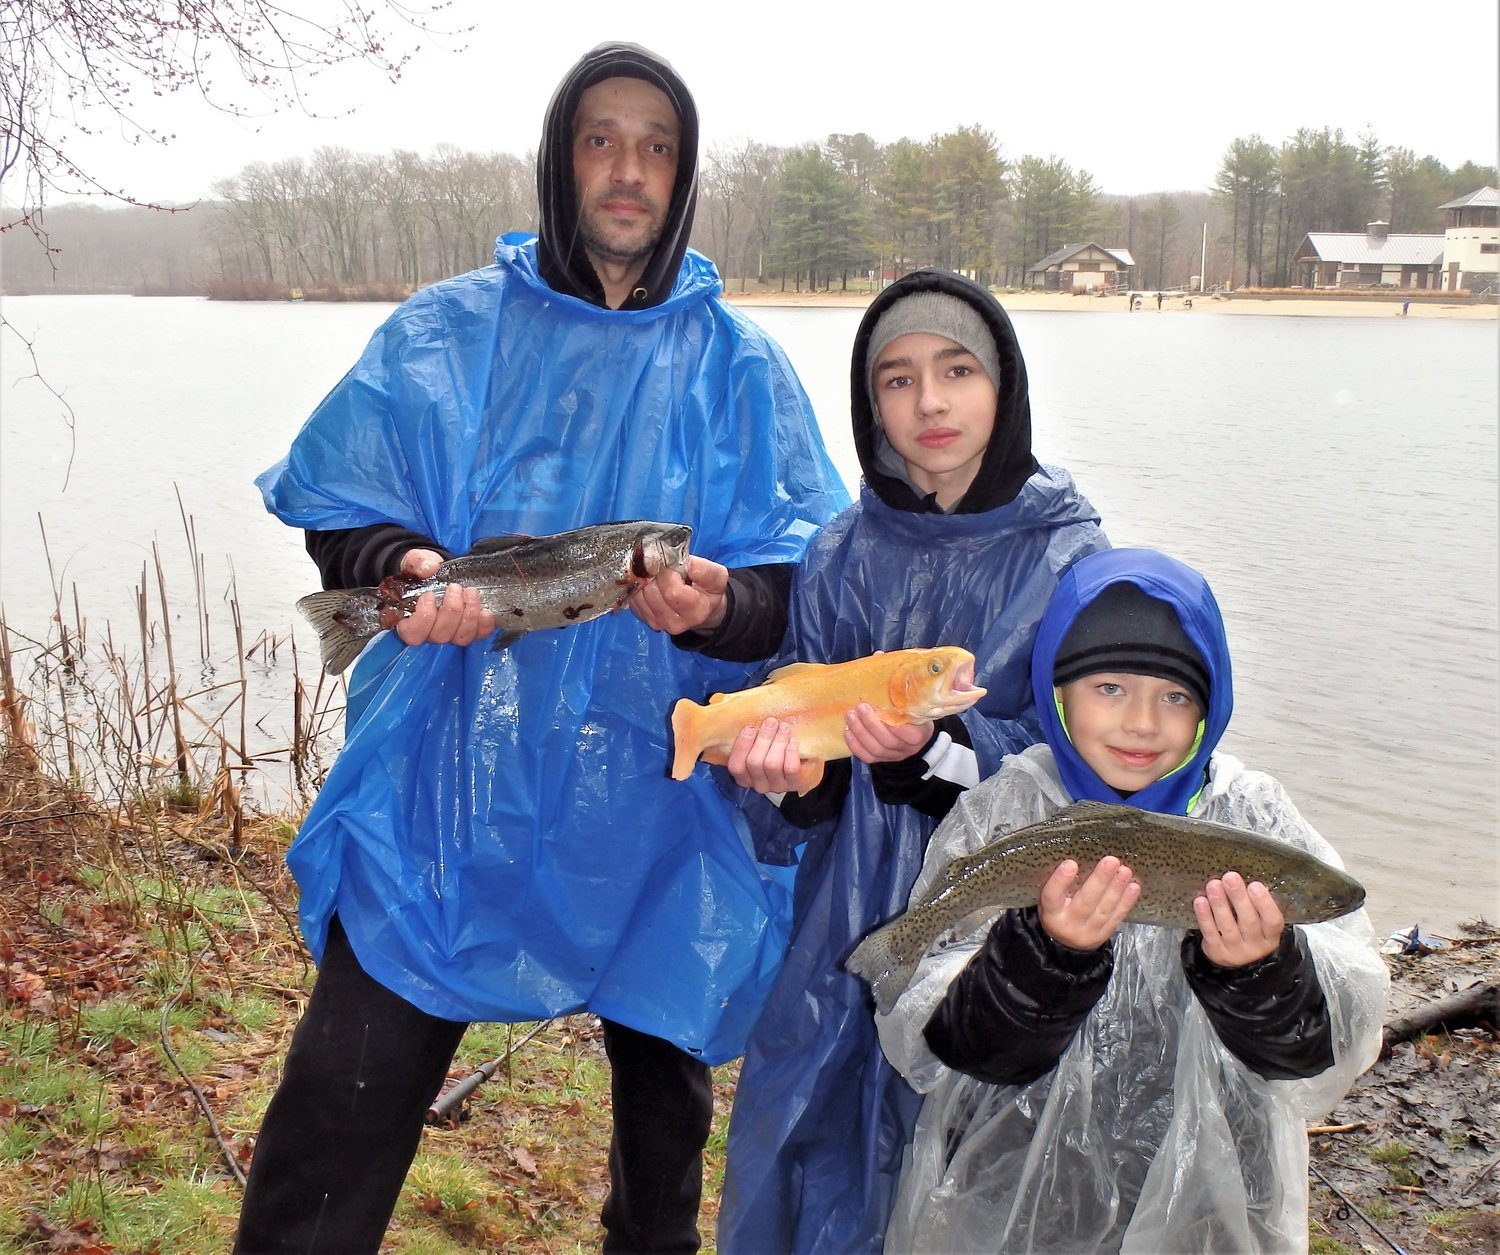 Golden Trout is King: Jaymin Deandrade with a golden trout he caught at Only Pond, Lincoln. Shown with his brother Henry and uncle Joe Botelhs, all from East Providence.